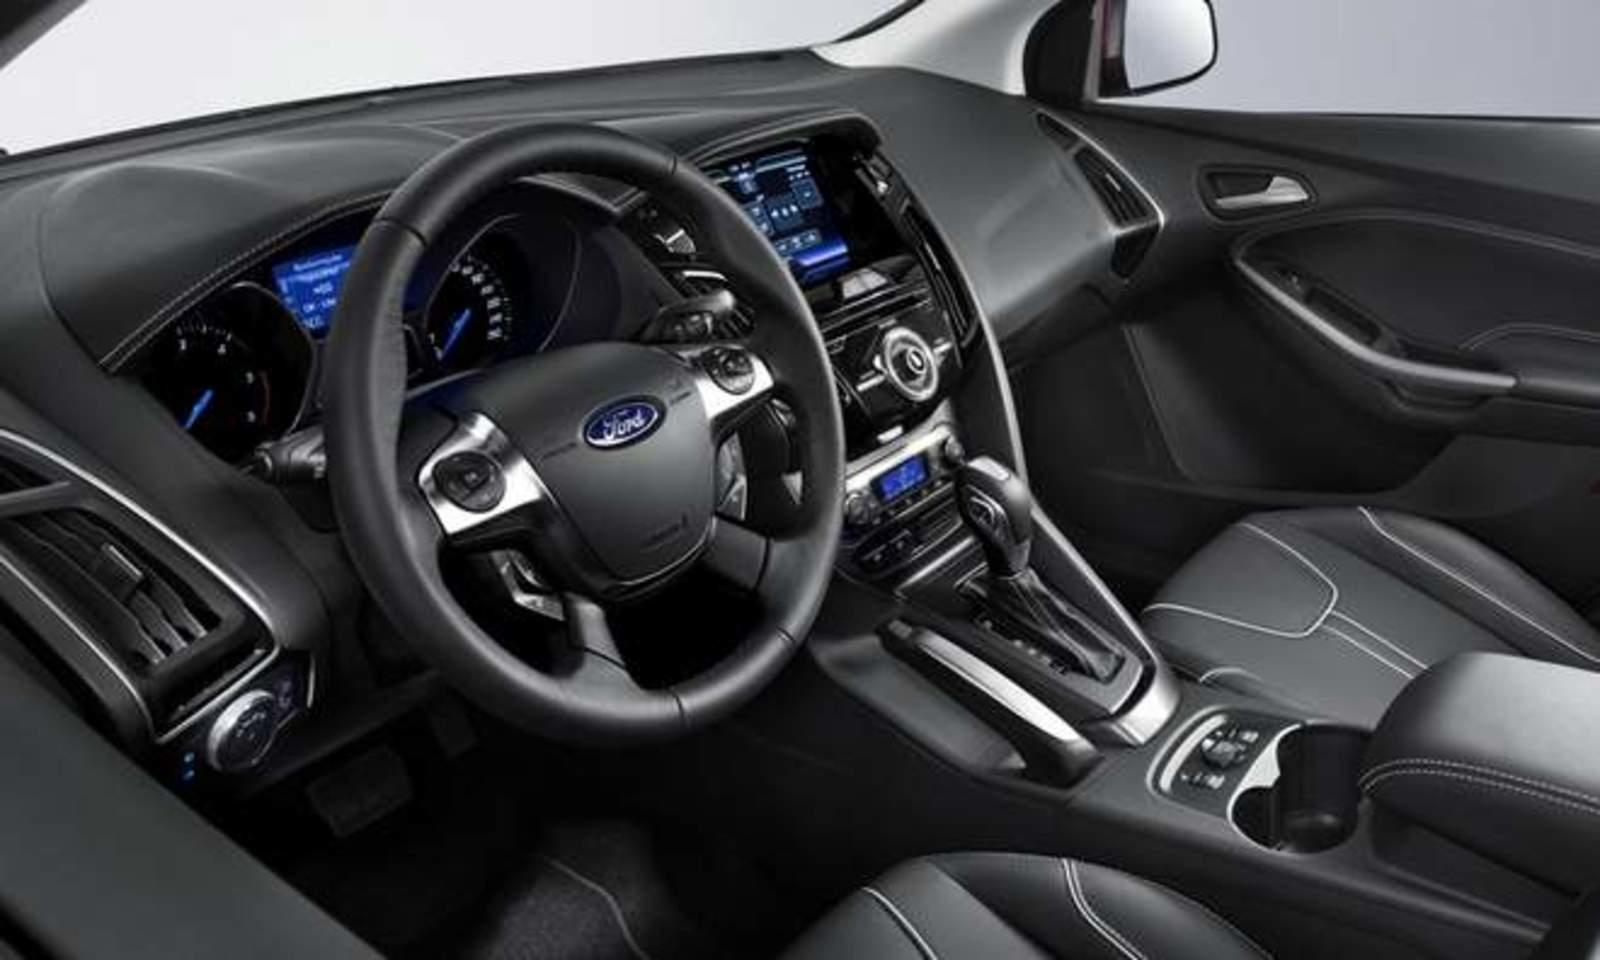 Ford Focus Reviews Specs Prices Photos And Videos Top Speed Taurus Electric Fan Install With Volvo 2 Controller In Depth Look At The Recently Unveiled 2012